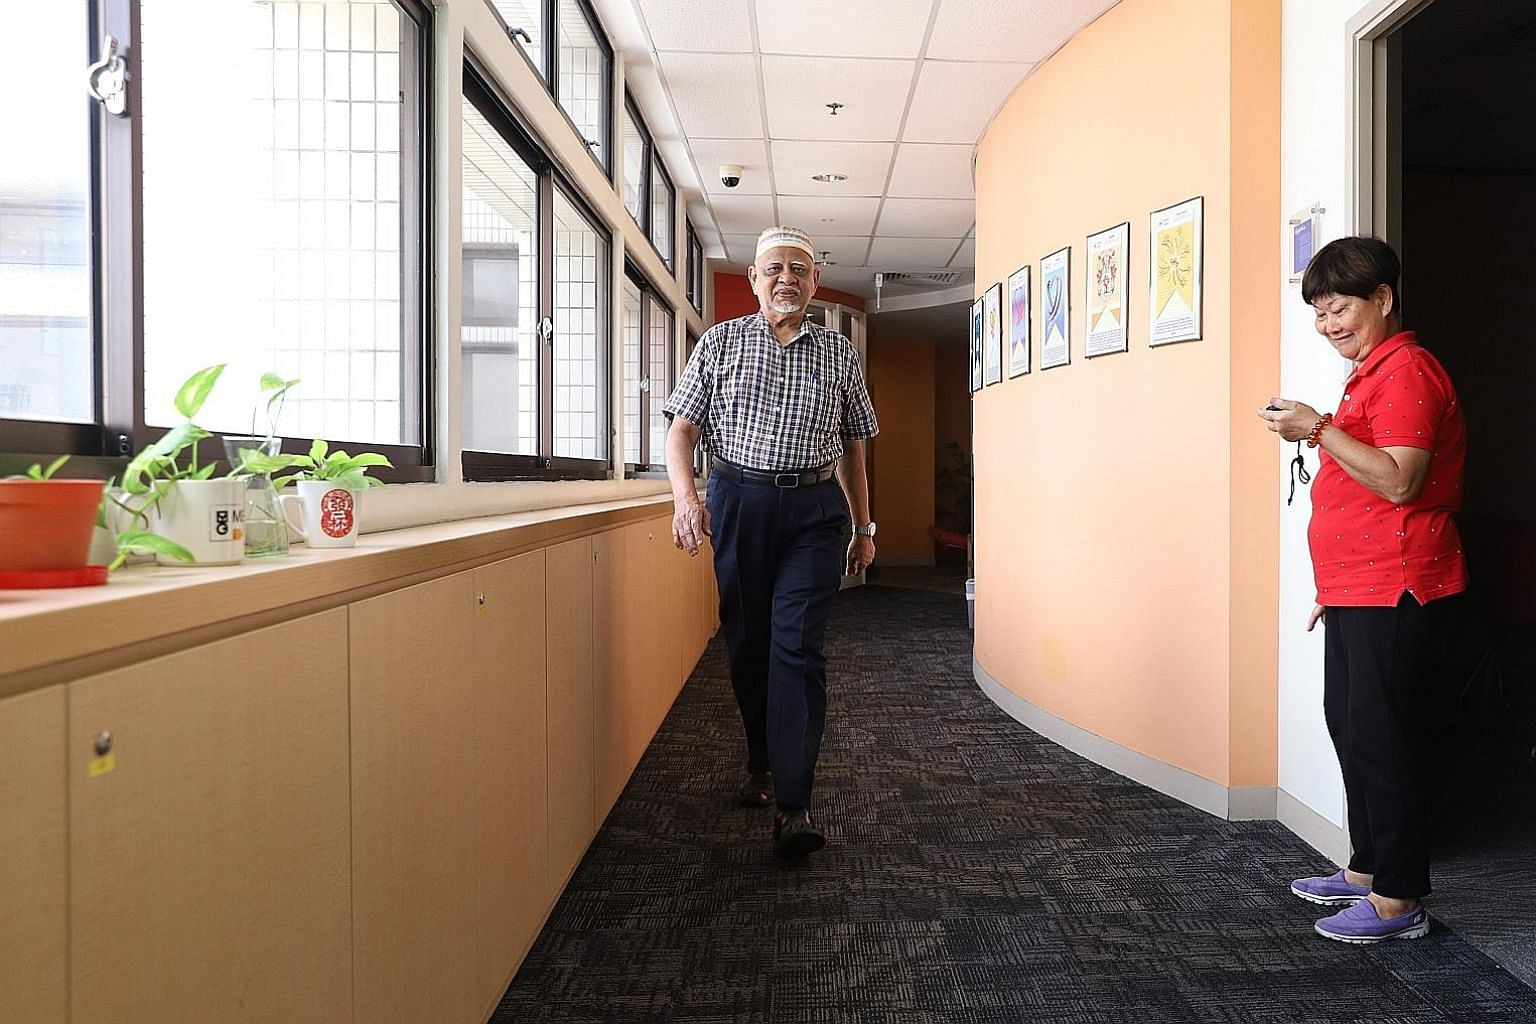 SingHealth Polyclinics clinical research coordinator Ng Chiat Eng measuring the walking speed of Mr Abdul Samad, 76, during a demonstration of sarcopenia assessment methods on Monday.